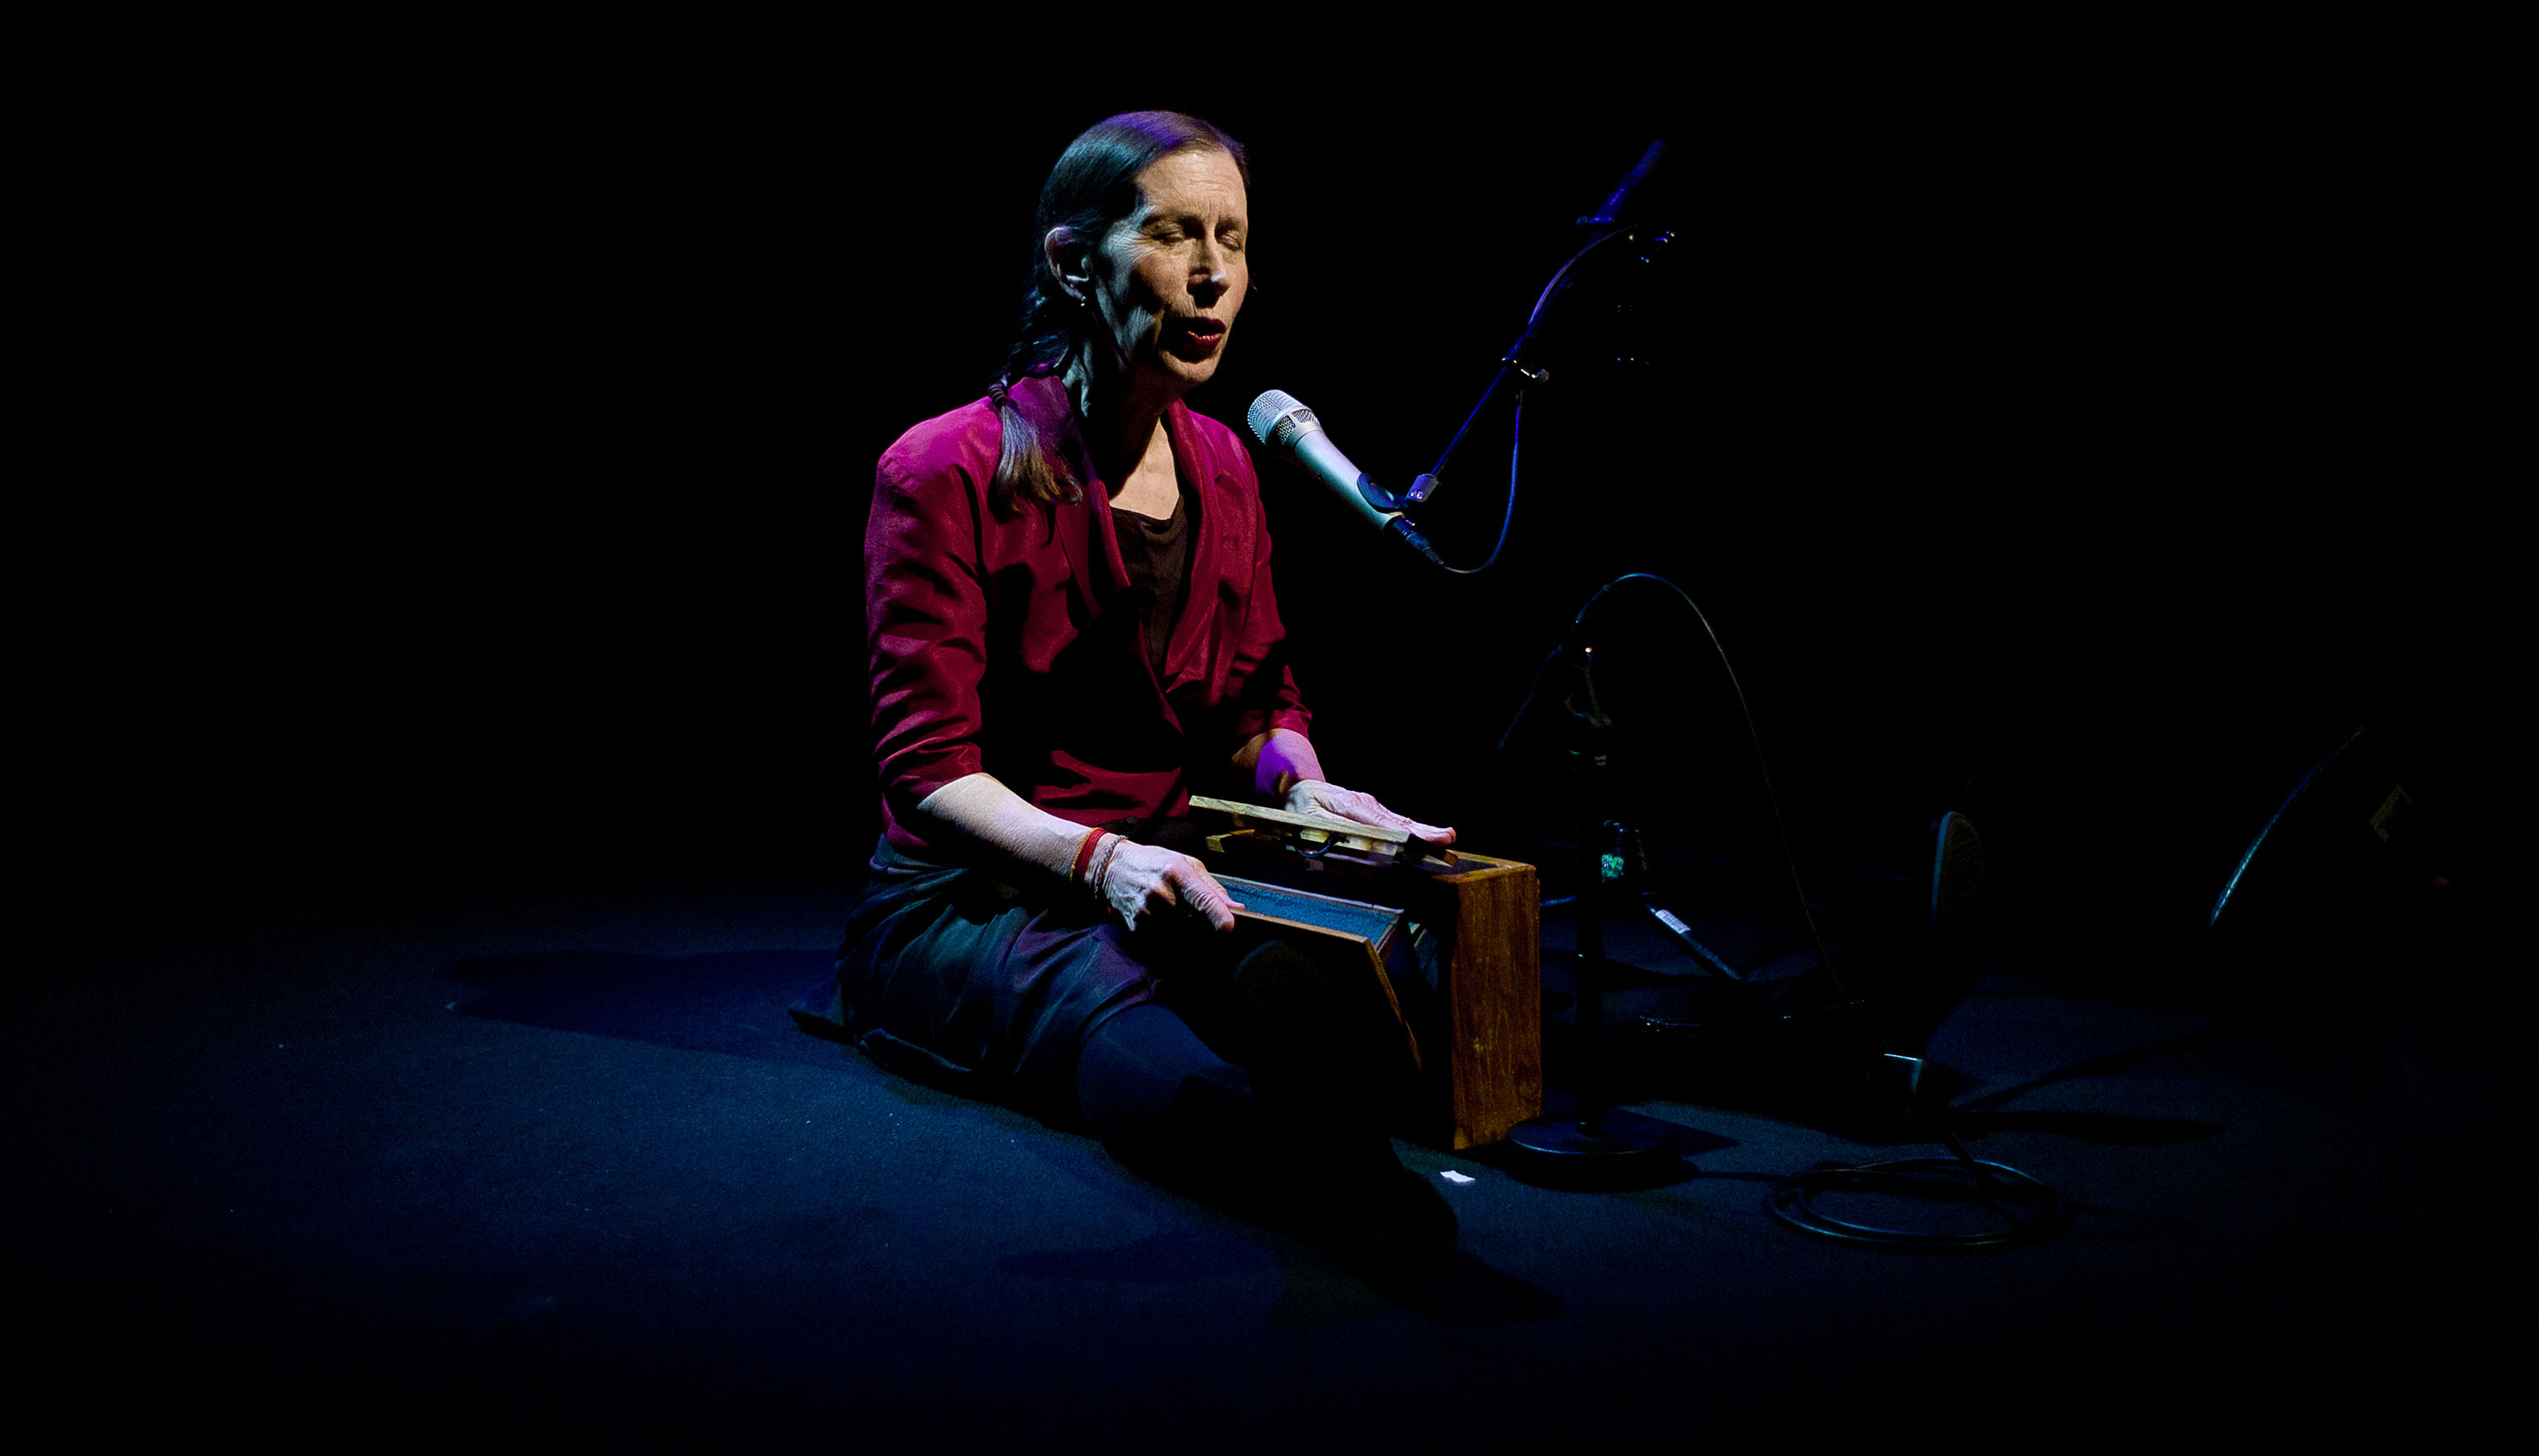 Meredith Monk Performs at Ecm: A Cultural Archeology Exhibition, Munich, Germany December 2012